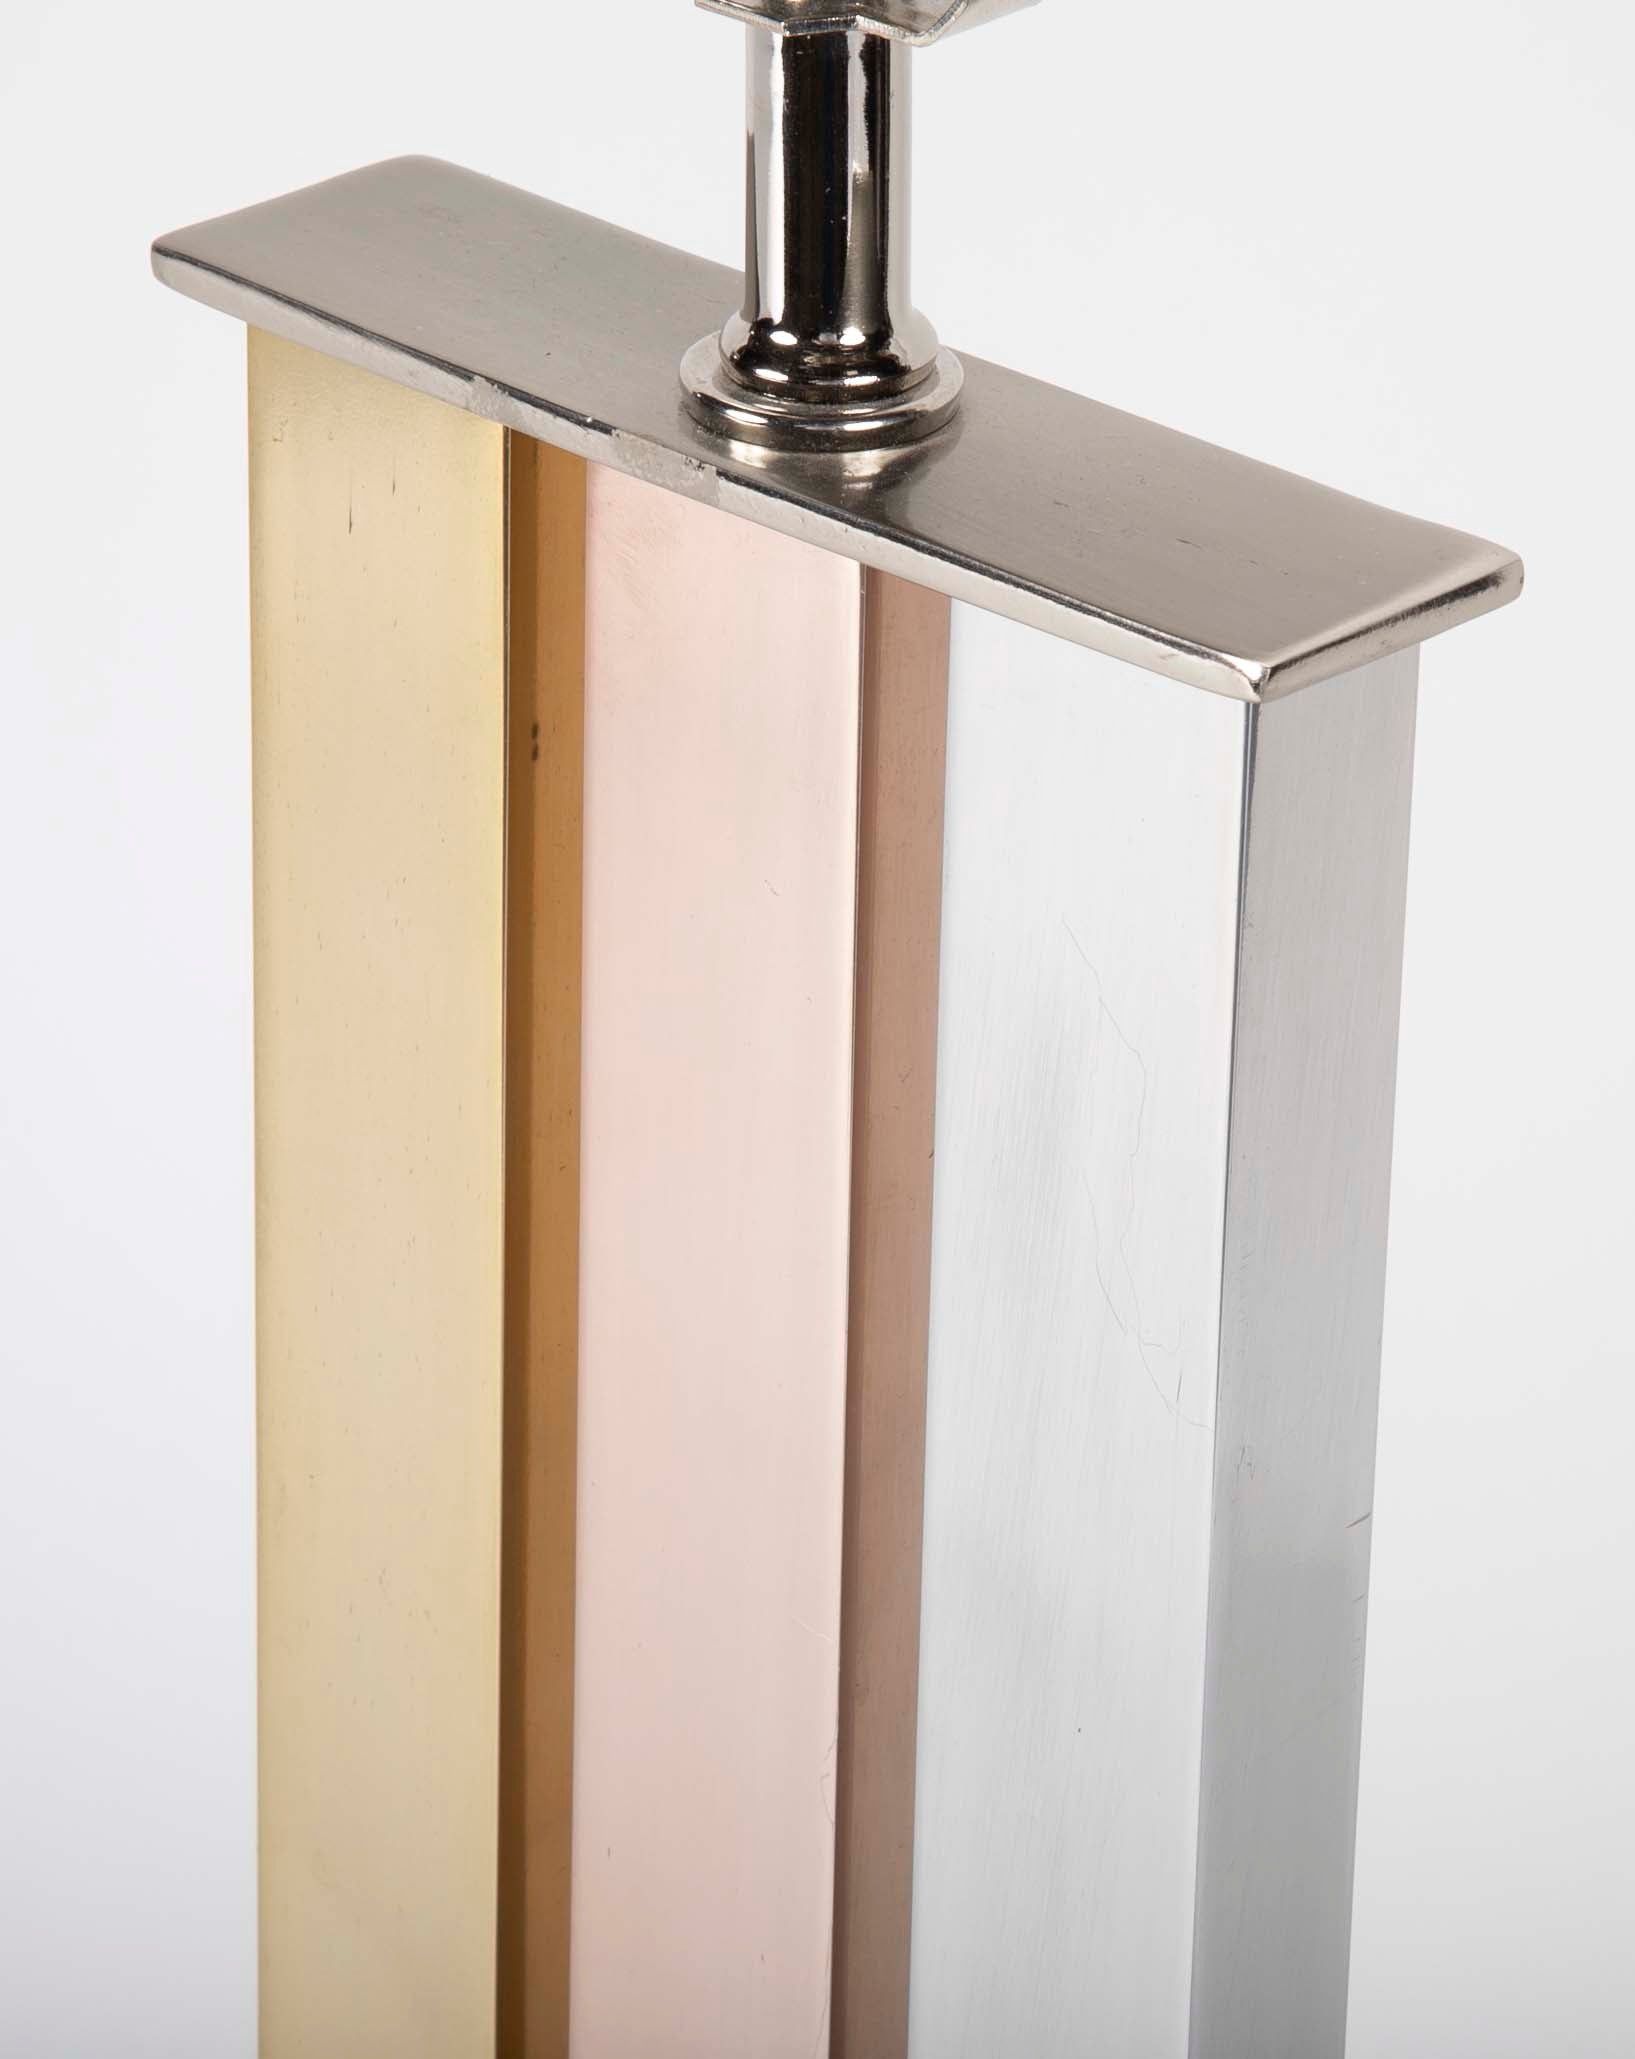 Pair of Brass, Copper & Aluminum Lamps in the Manner of Paul Evans